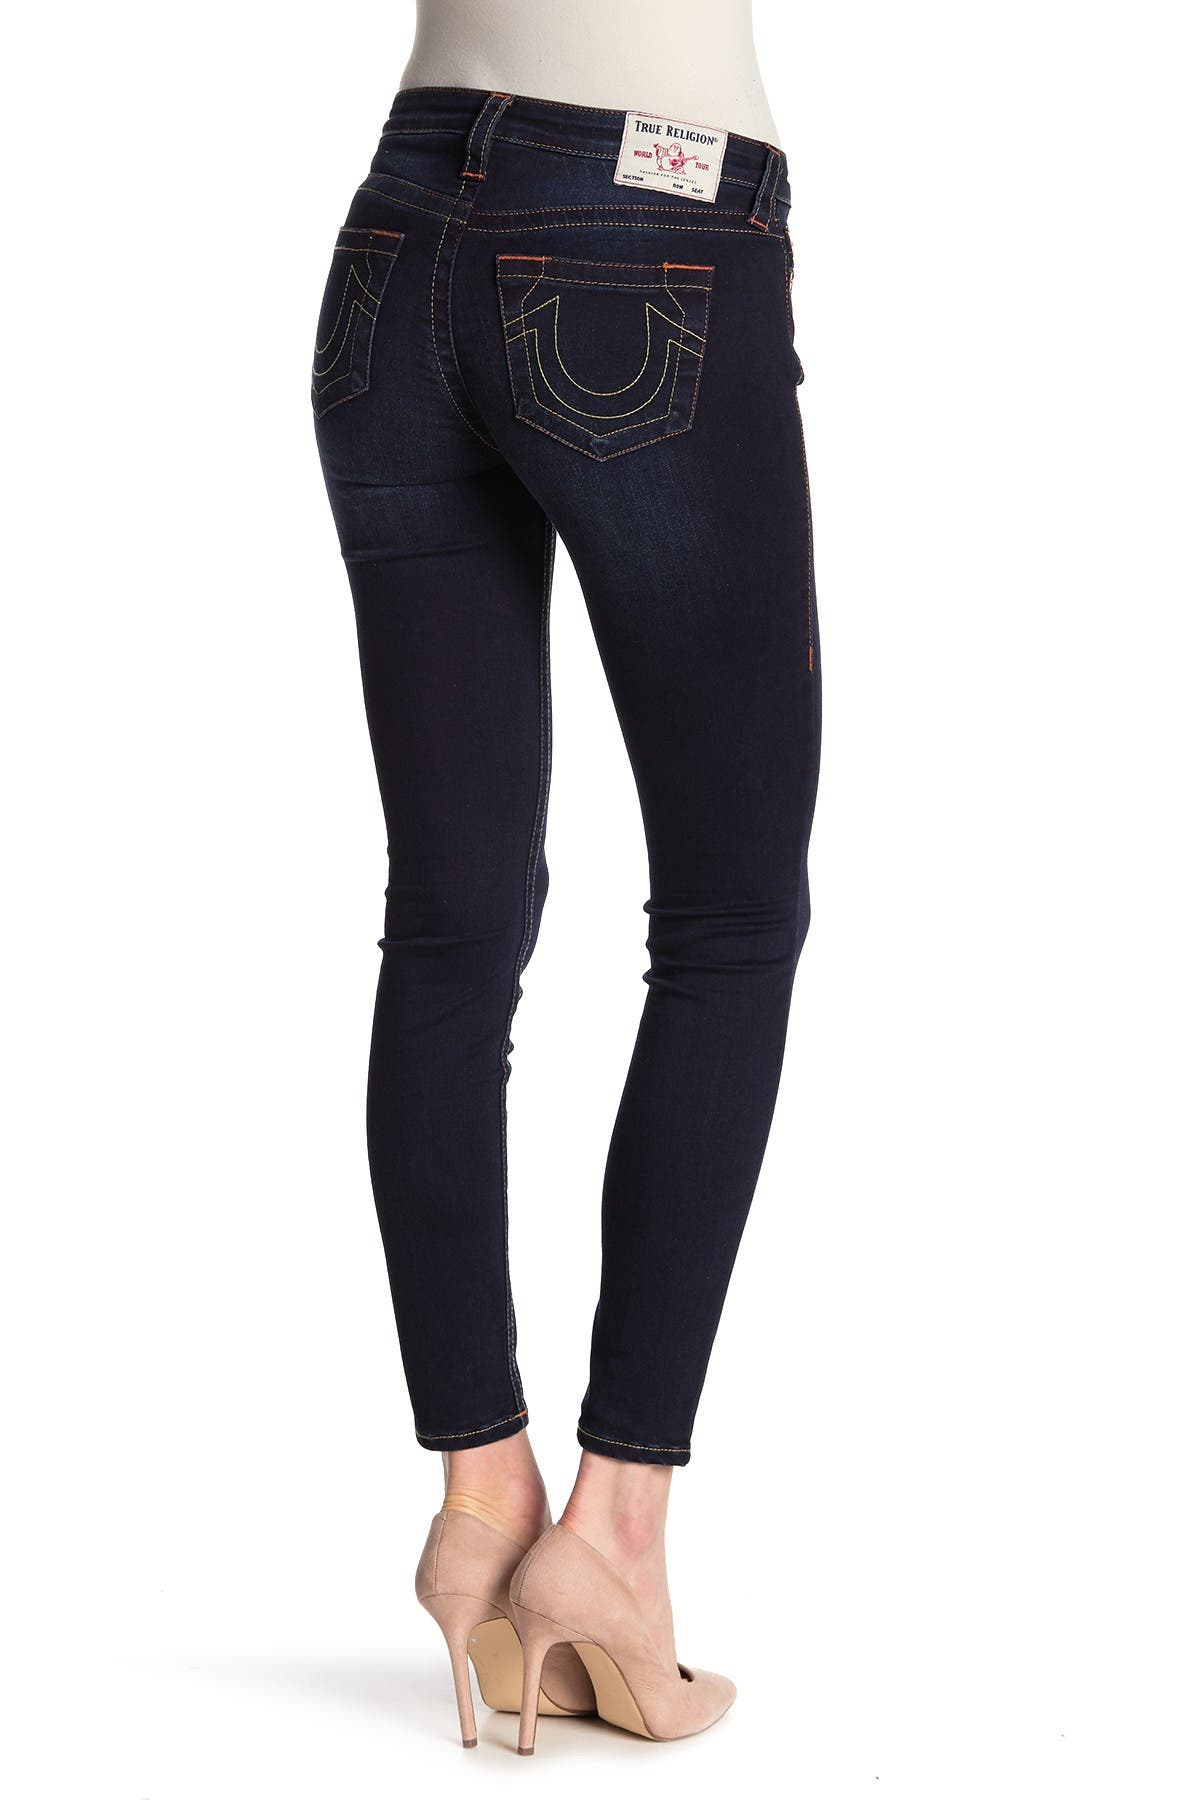 Image of True Religion Halle Om Core Mid Rise Skinny Jeans